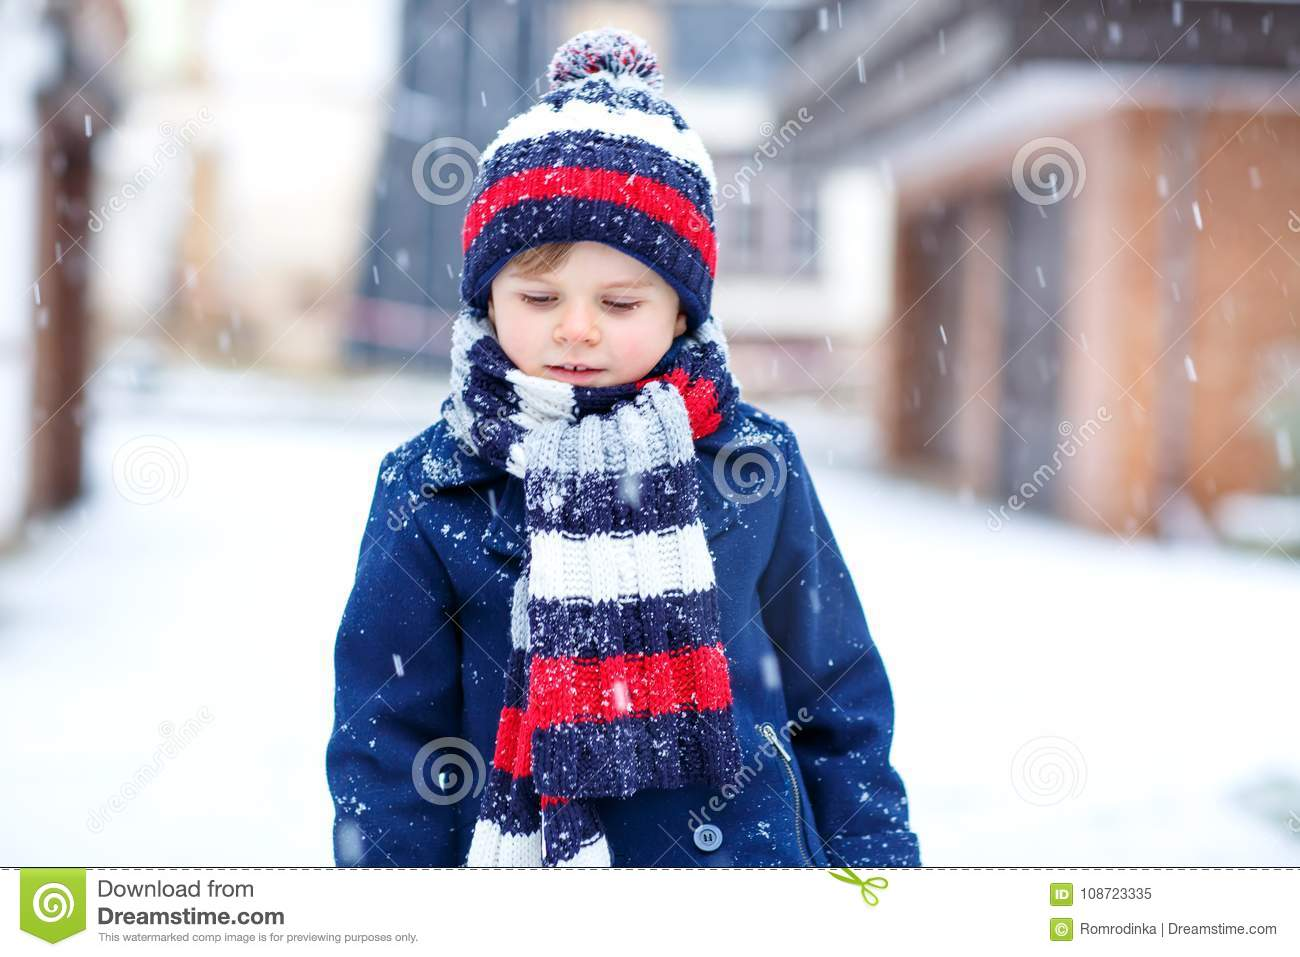 59d577da2 Cute Little Funny Kid Boy In Colorful Winter Fashion Clothes Having ...